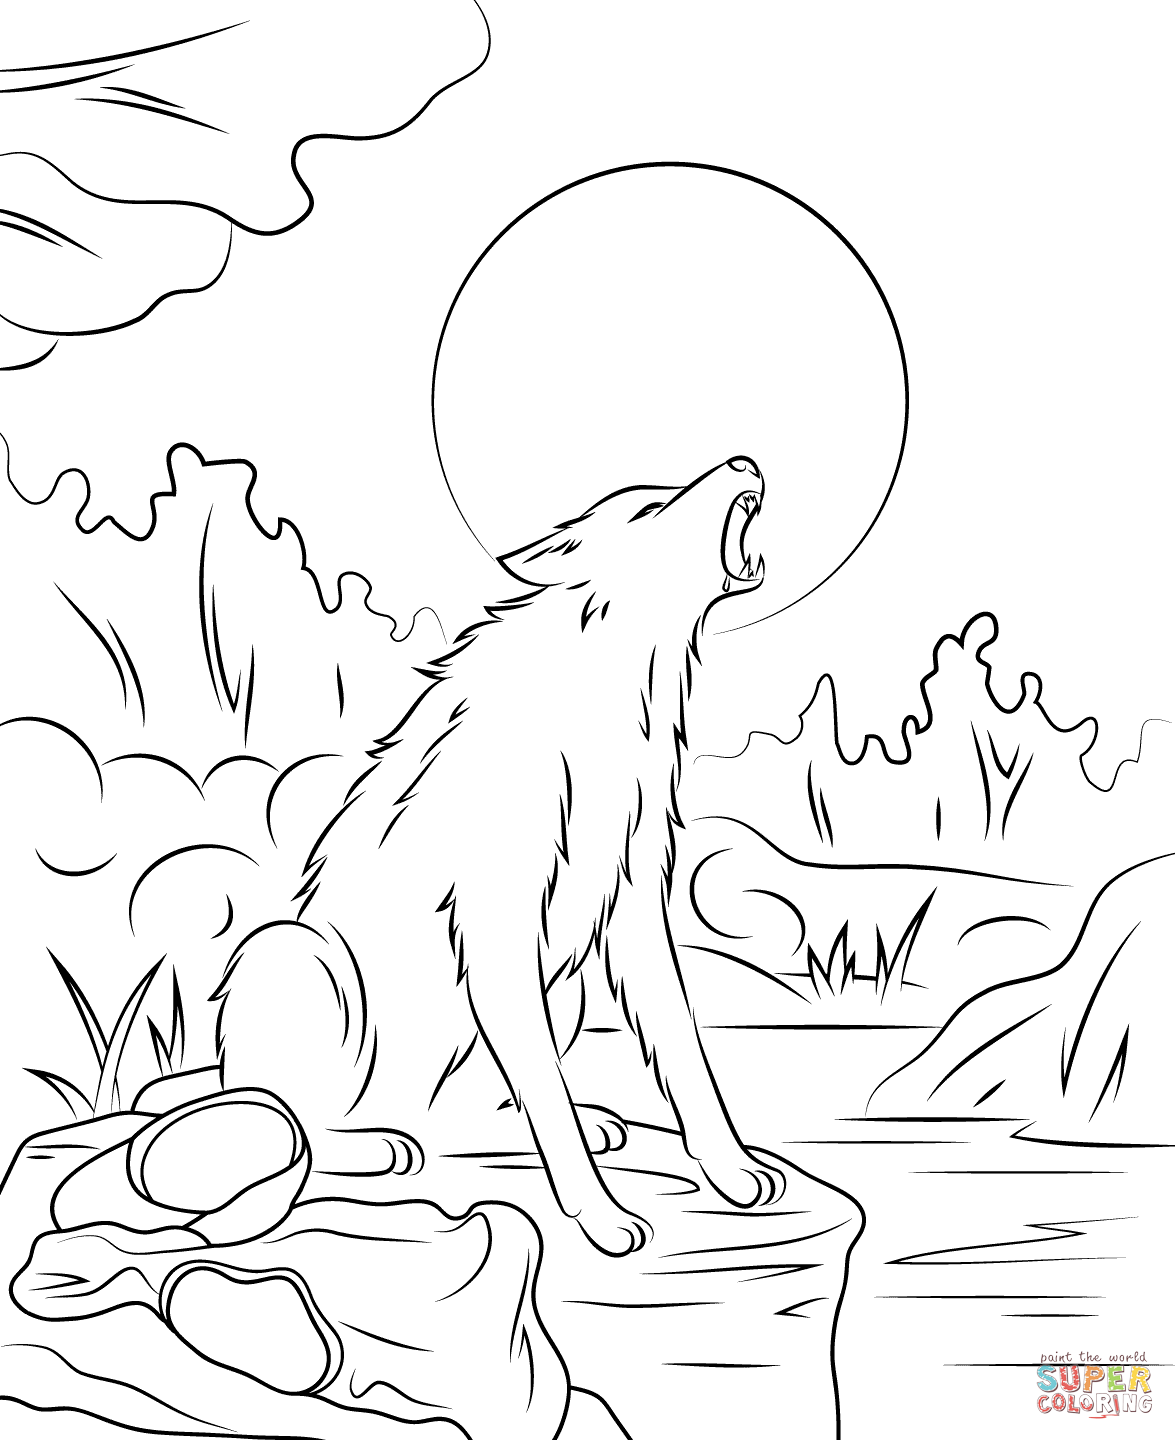 Coloring Pages: Goosebumps Coloring Pages